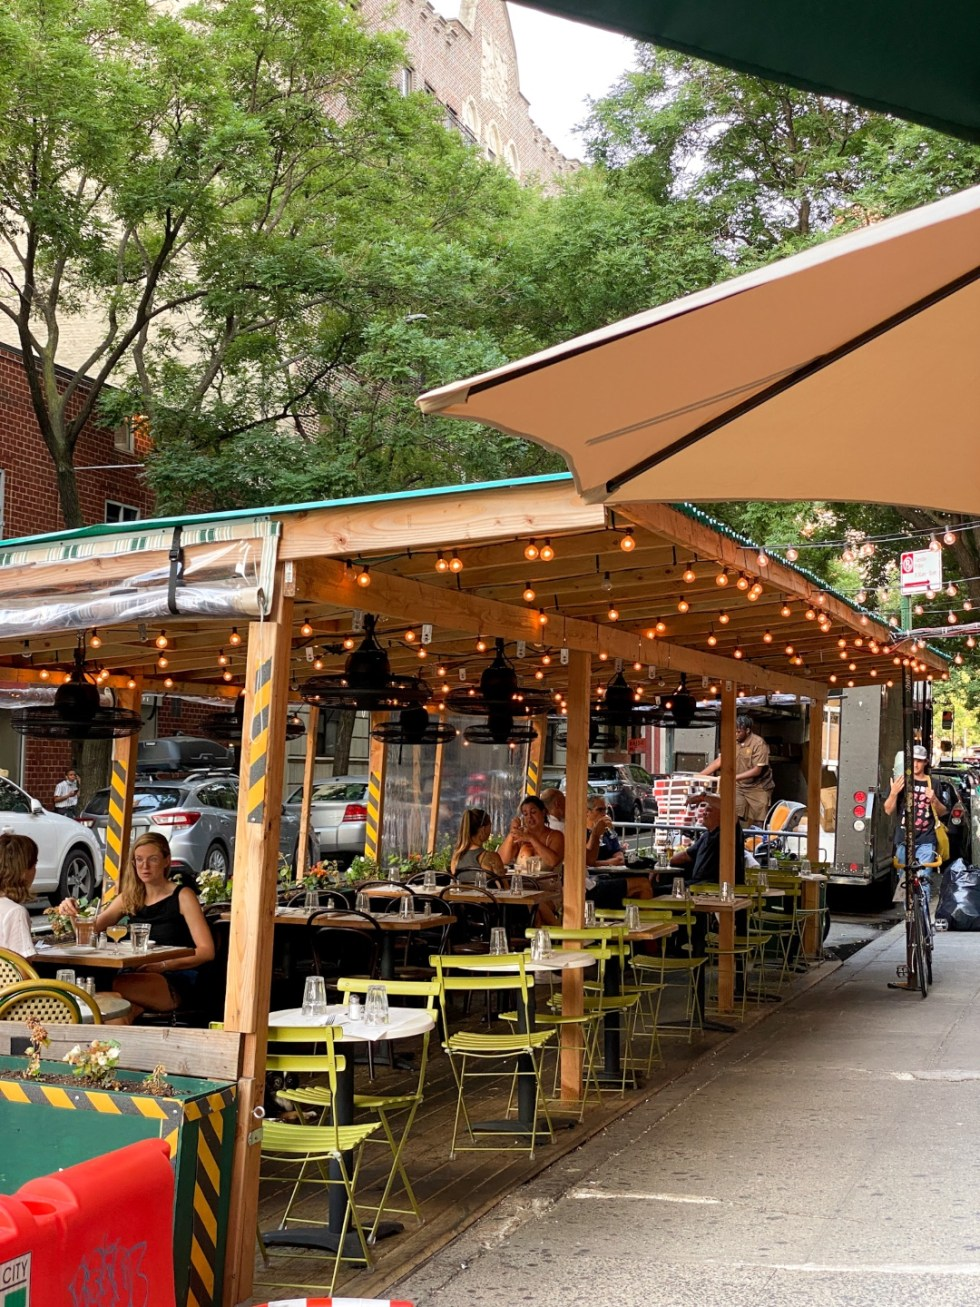 NYC Summer Weekend: Things to Do in NYC in the Summer - I'm Fixin' To - @imfixintoblog   NYC Summer Weekend by popular NC travel blog, I'm Fixin' To: image of Jack's Wife Freda restaurant outdoor eating area.